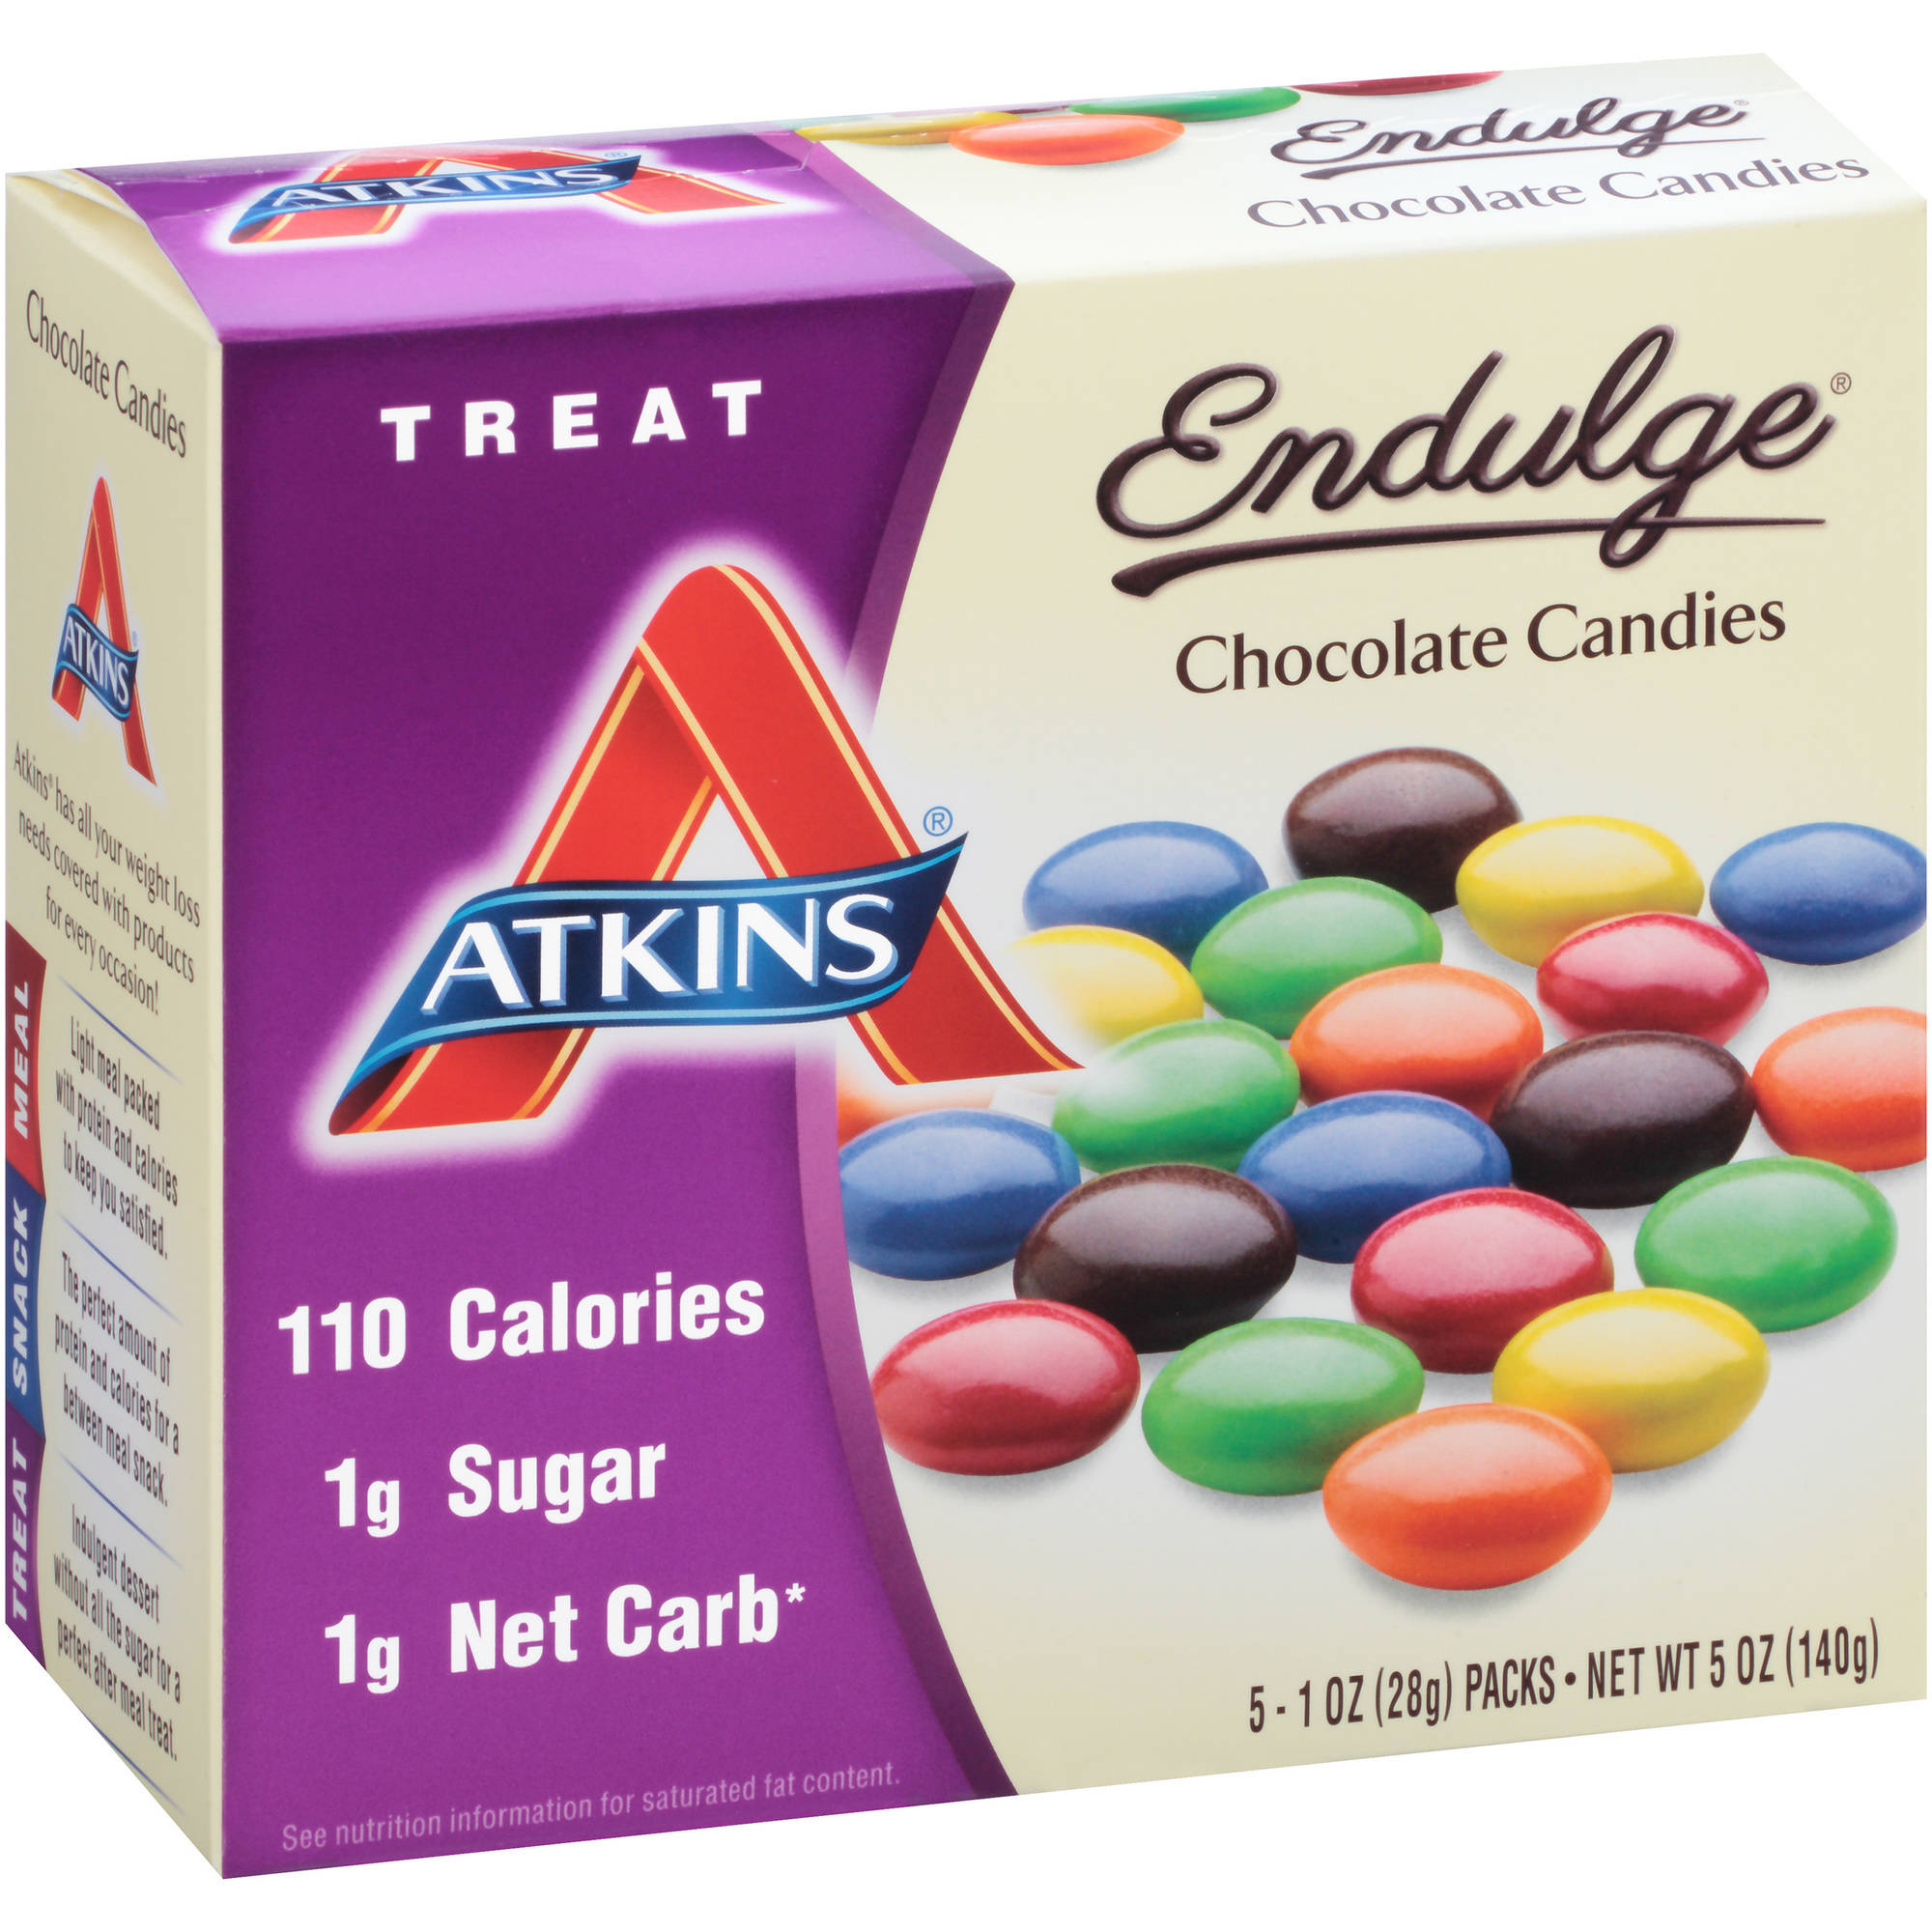 Atkins Endulge Chocolate Candies, 1 oz, 5 count